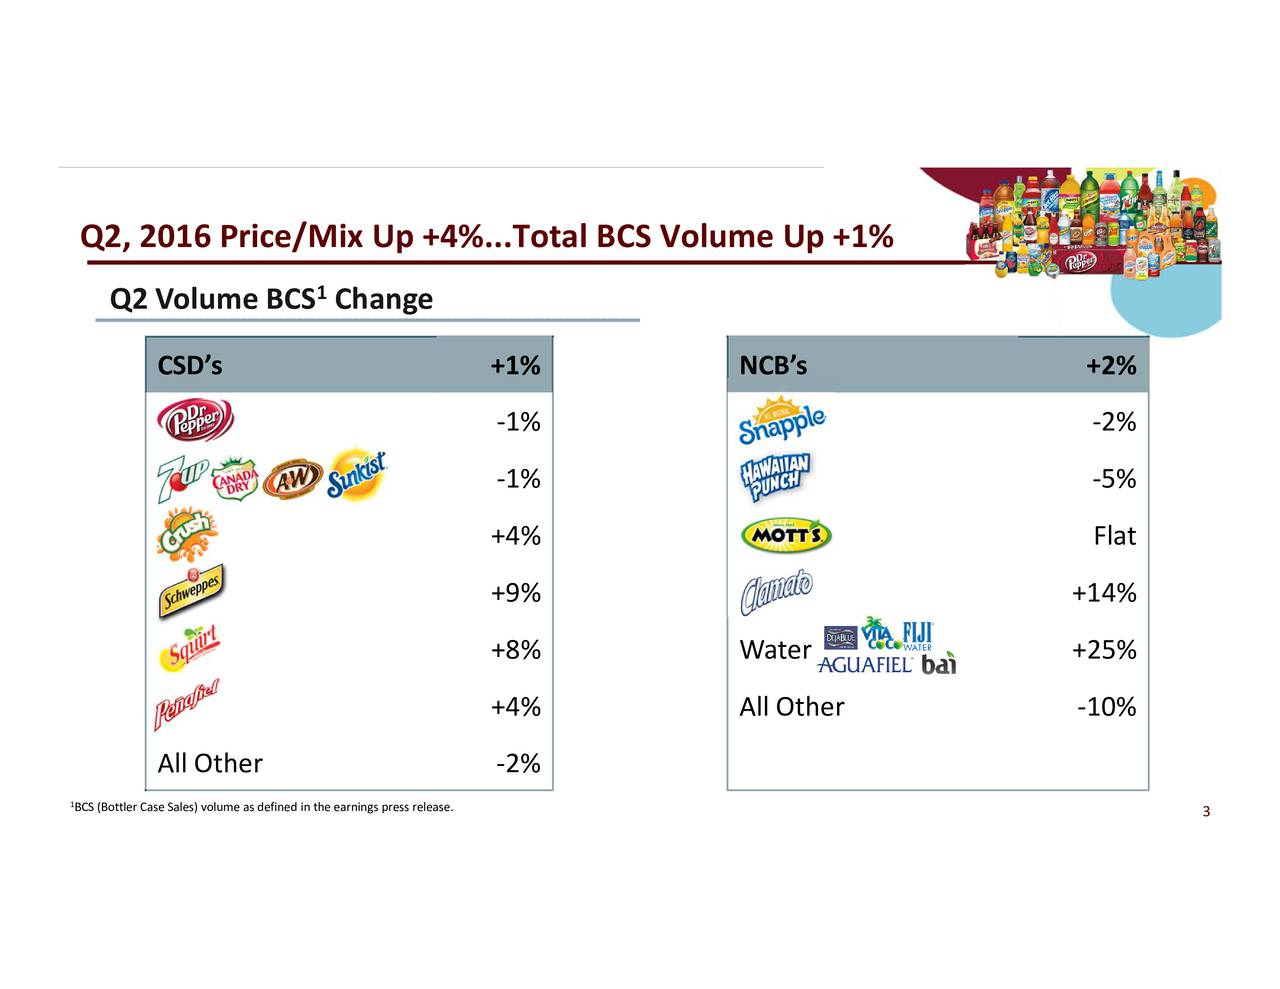 -2% -5% Flat +14% NCBs Wate +2% Other +25%-10% -1% -1% +4% +9% +8% +4% Change arnings press release. 1 CSDs +1% All Other -2% Q2 Volume BCS Q2, 2016 Price/Mix Up +4%...Total BCS Volume 1BCS (Bottler Case Sales) volume as defined in the e